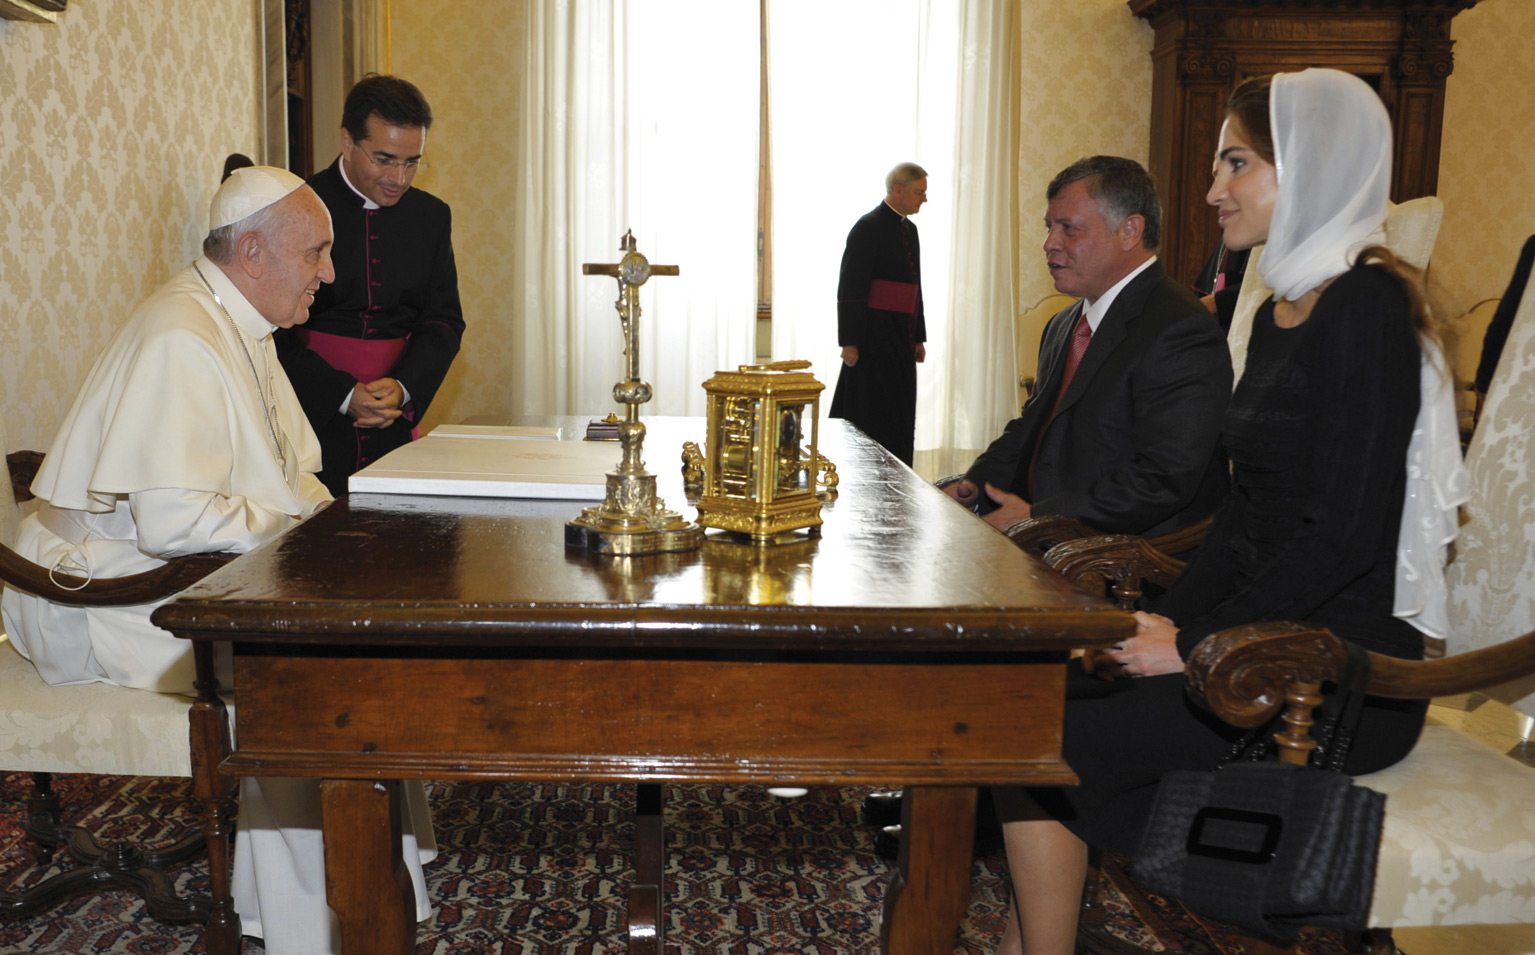 August 29, 2013. In the Pope's Private Library, in the Vatican. Pope Francis received His Majesty Abd Allah II Ibn Husayn, King of Jordan, with his wife.